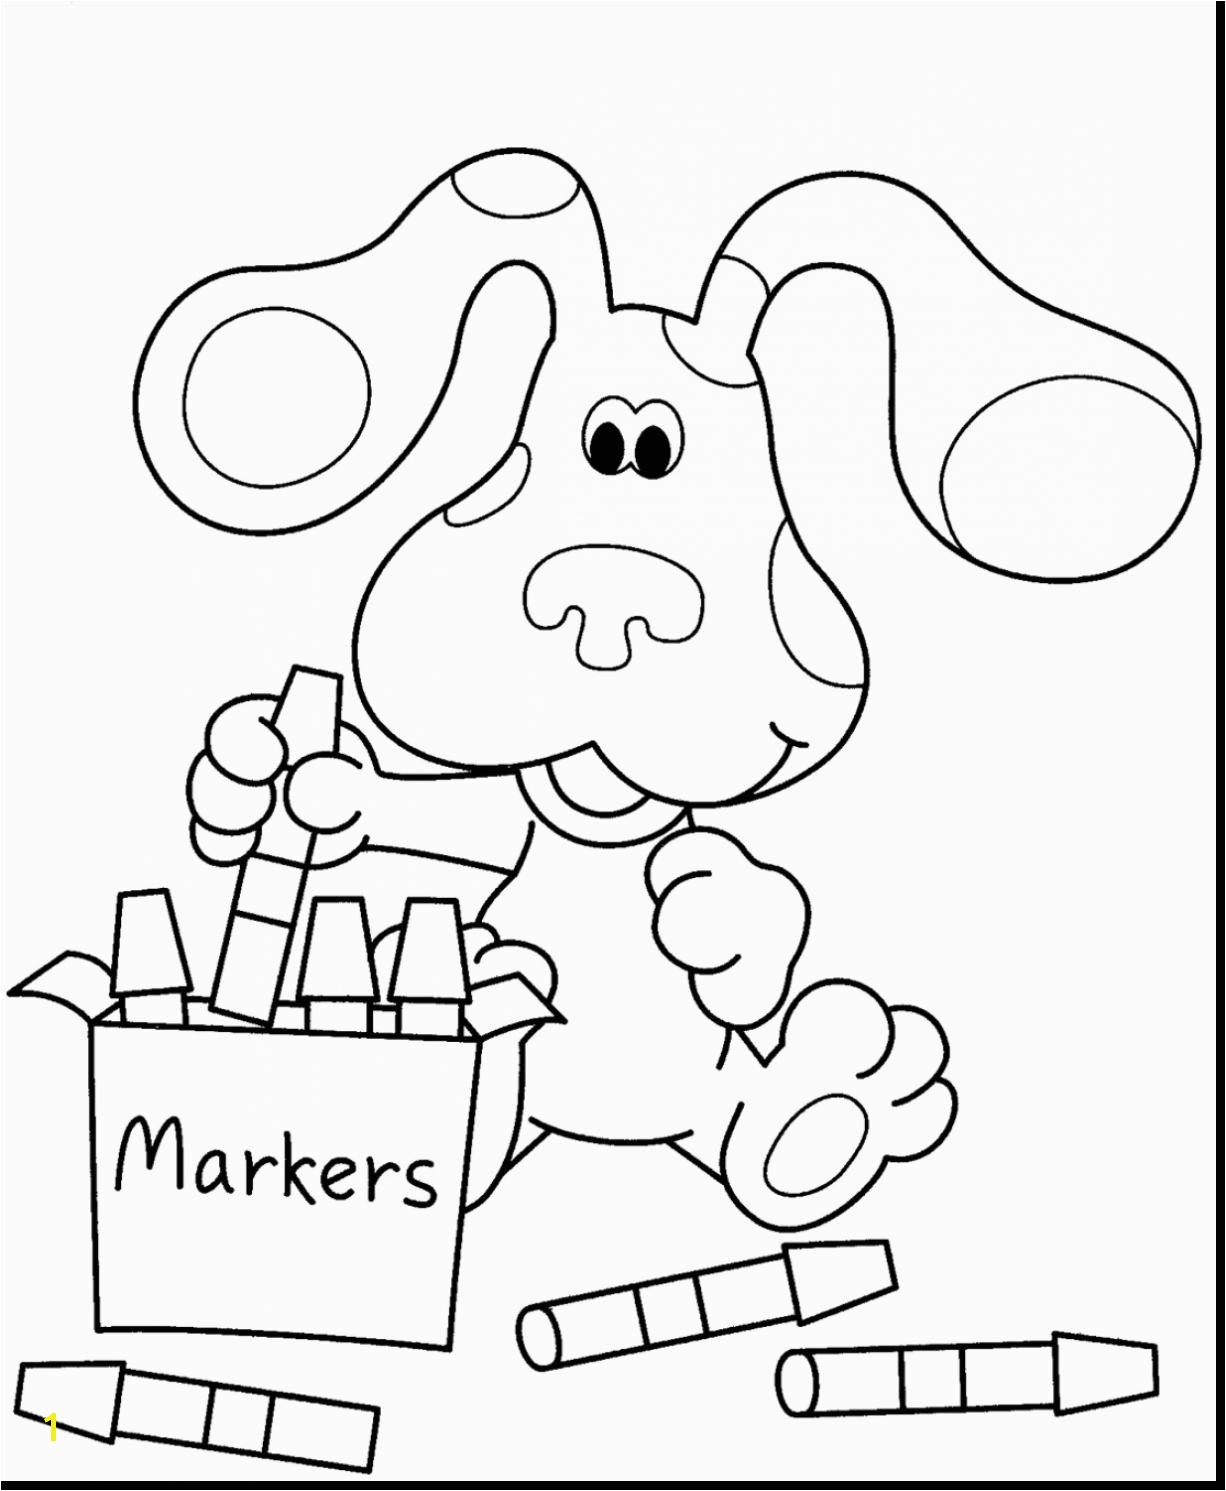 Peter Rabbit Nick Jr Coloring Pages 28 Collection Of Blaze Nick Jr Coloring Pages